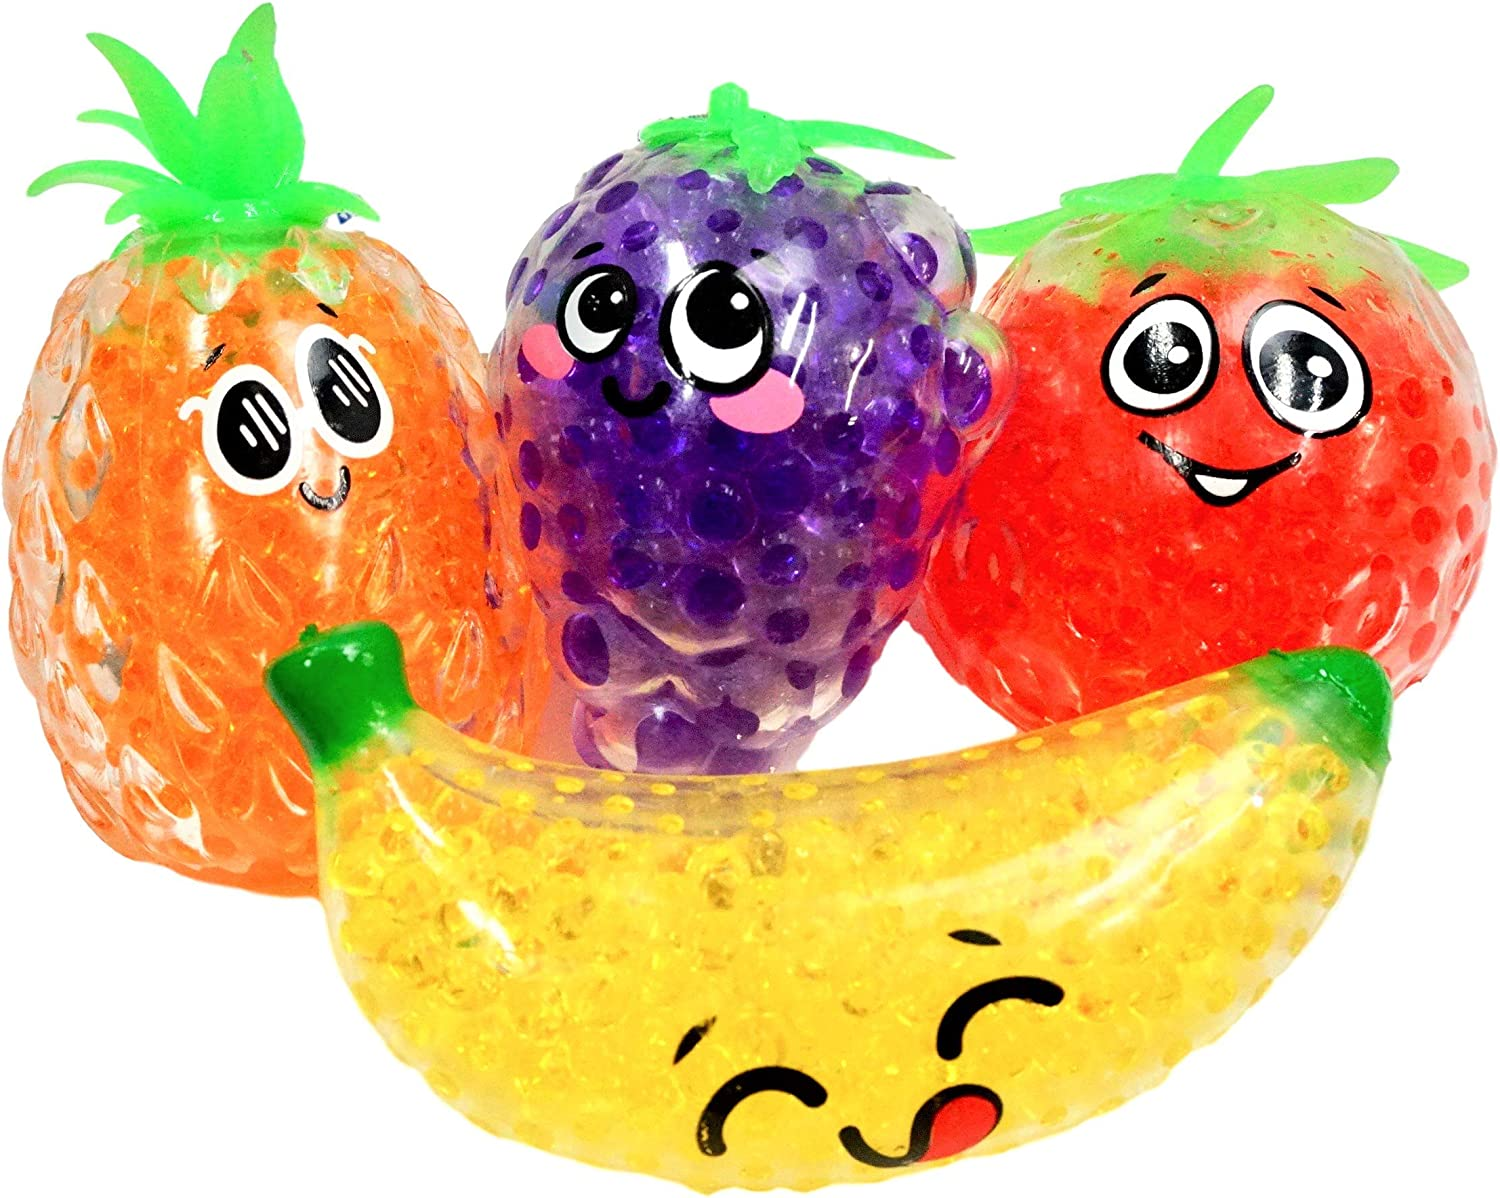 Water Beads Fruit Stress Balls Squishy Toys (4 Unit Assorted) Fidget Toy Large Stress Relief Soft Squishies Balls for Kids Toddlers Adults. Great Party Favors Game Food Toys. Plus 1 Ball 4197-4p